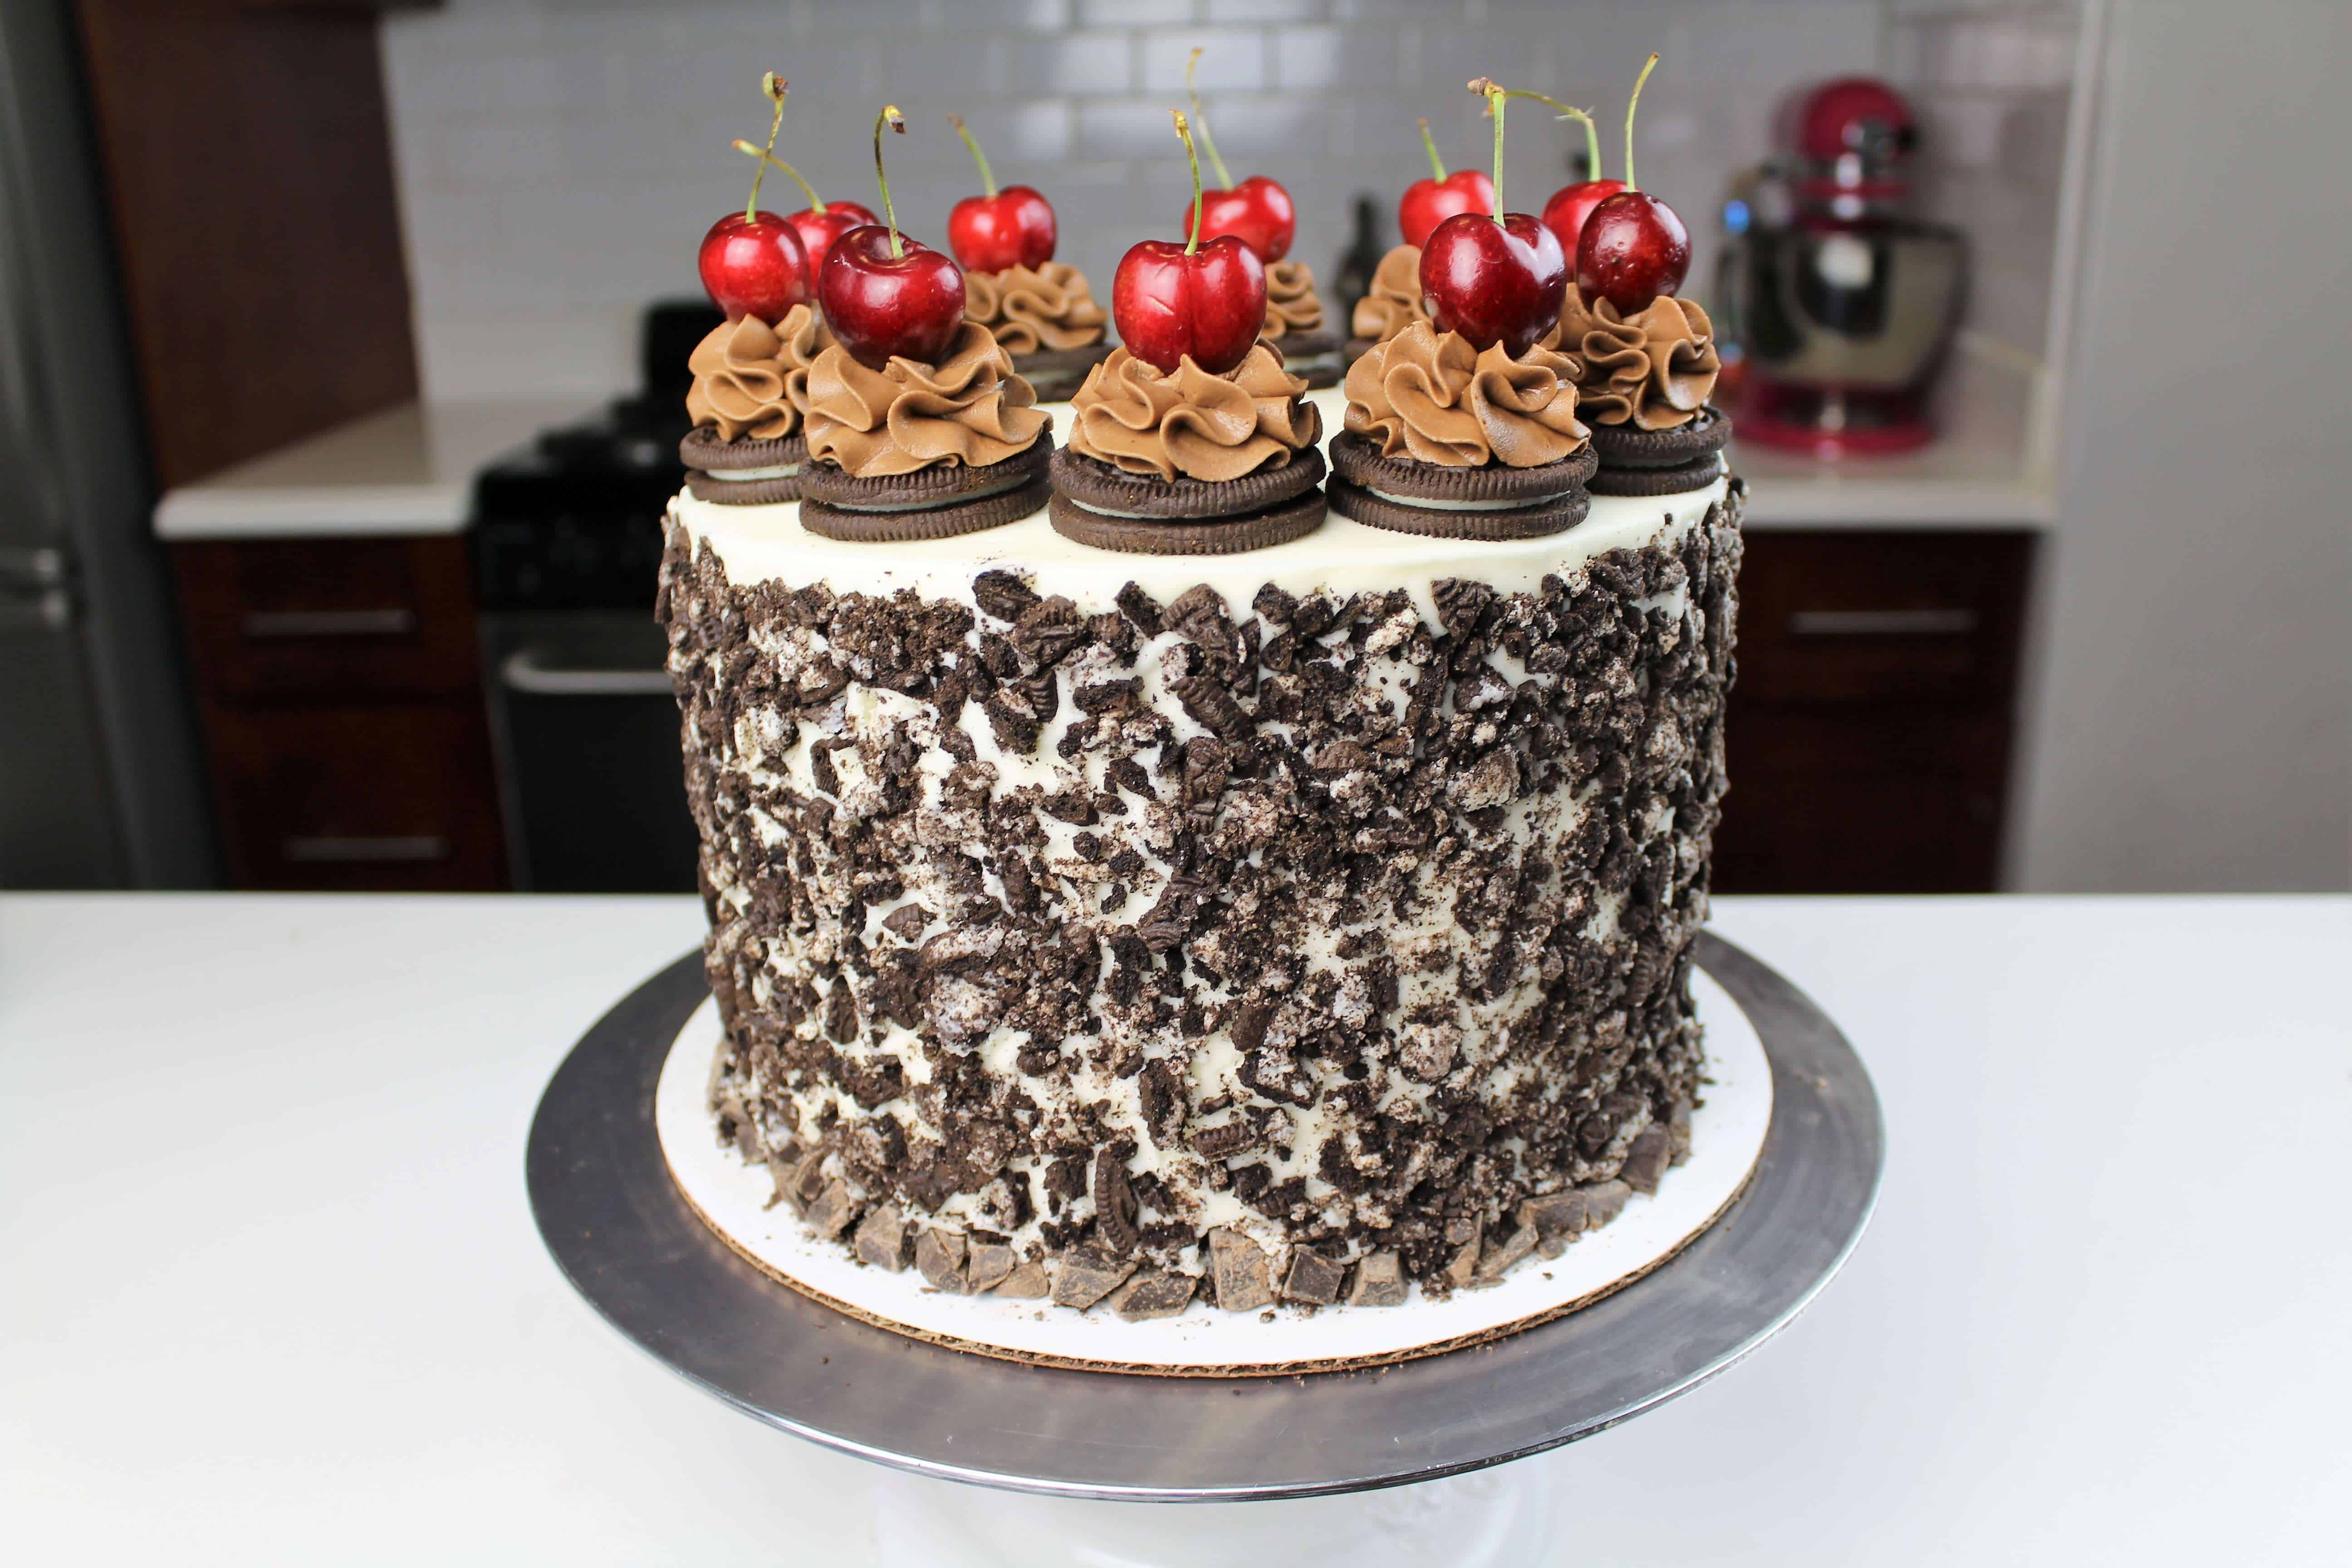 I Partnered With Oreo To Create This Black Forest Cake Its My Flavor Creation Idea For Their Latest Contest Made It Favorite